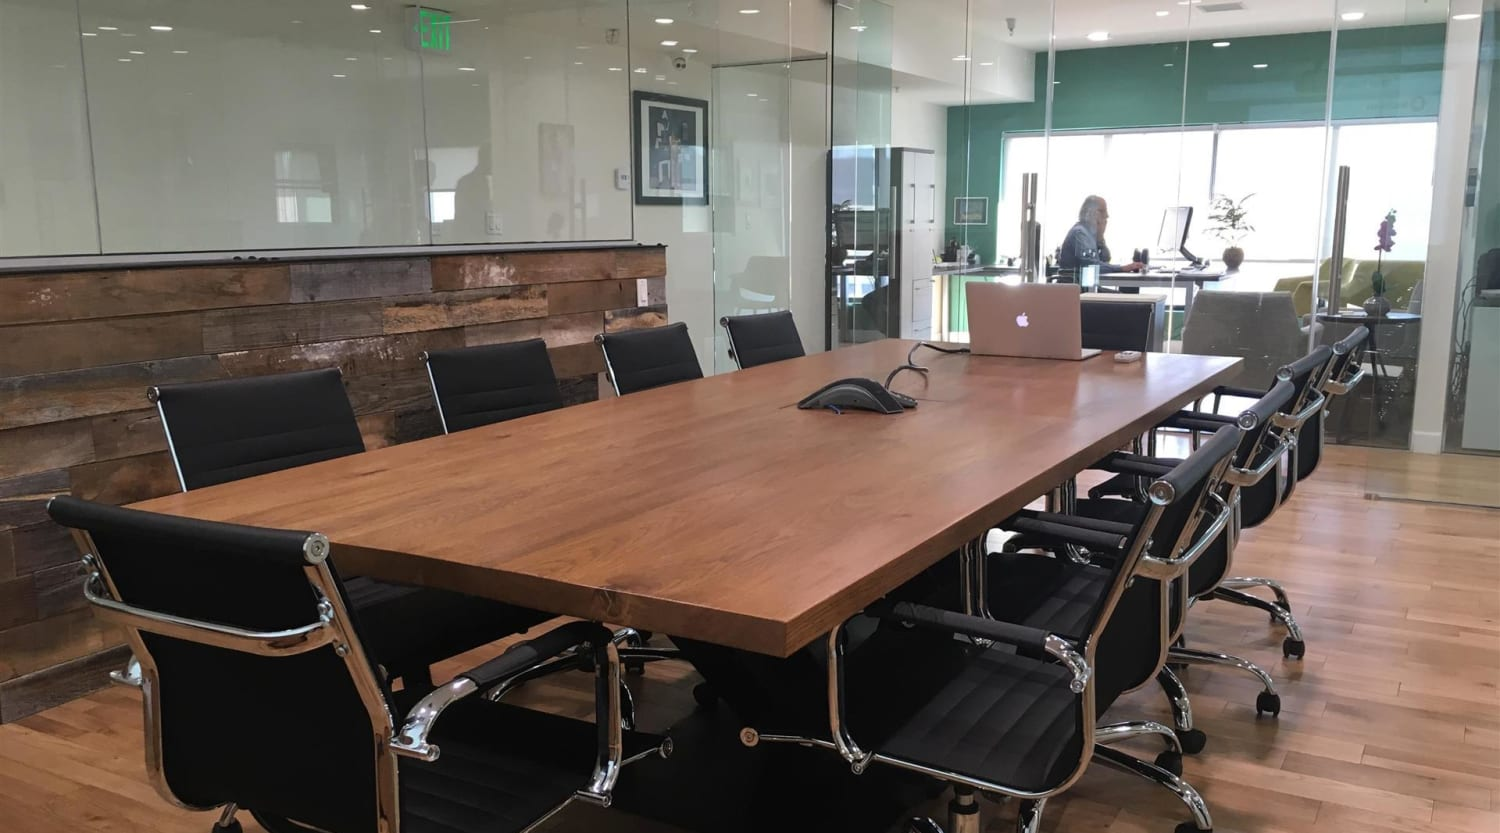 Conference Room, #Conference Room, 4011 West Jefferson Boulevard, 2nd Floor, Room Conference Room